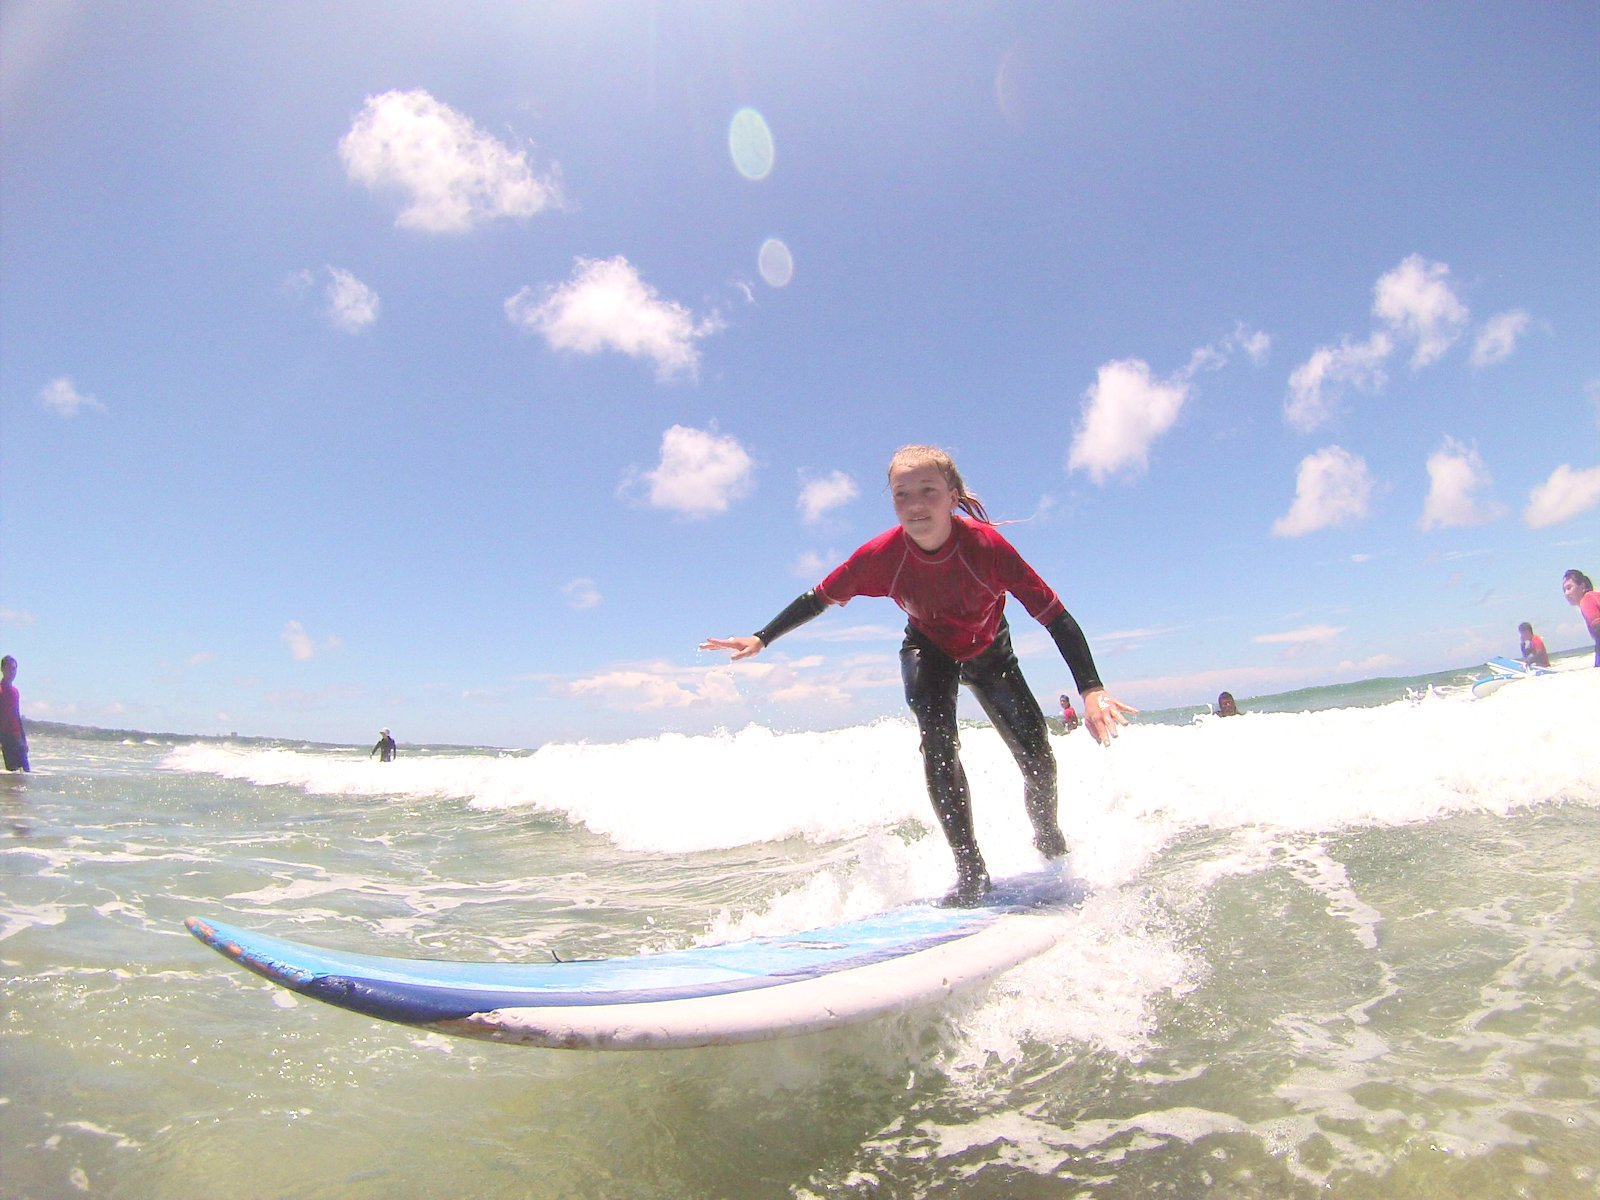 Surfing for the first time3